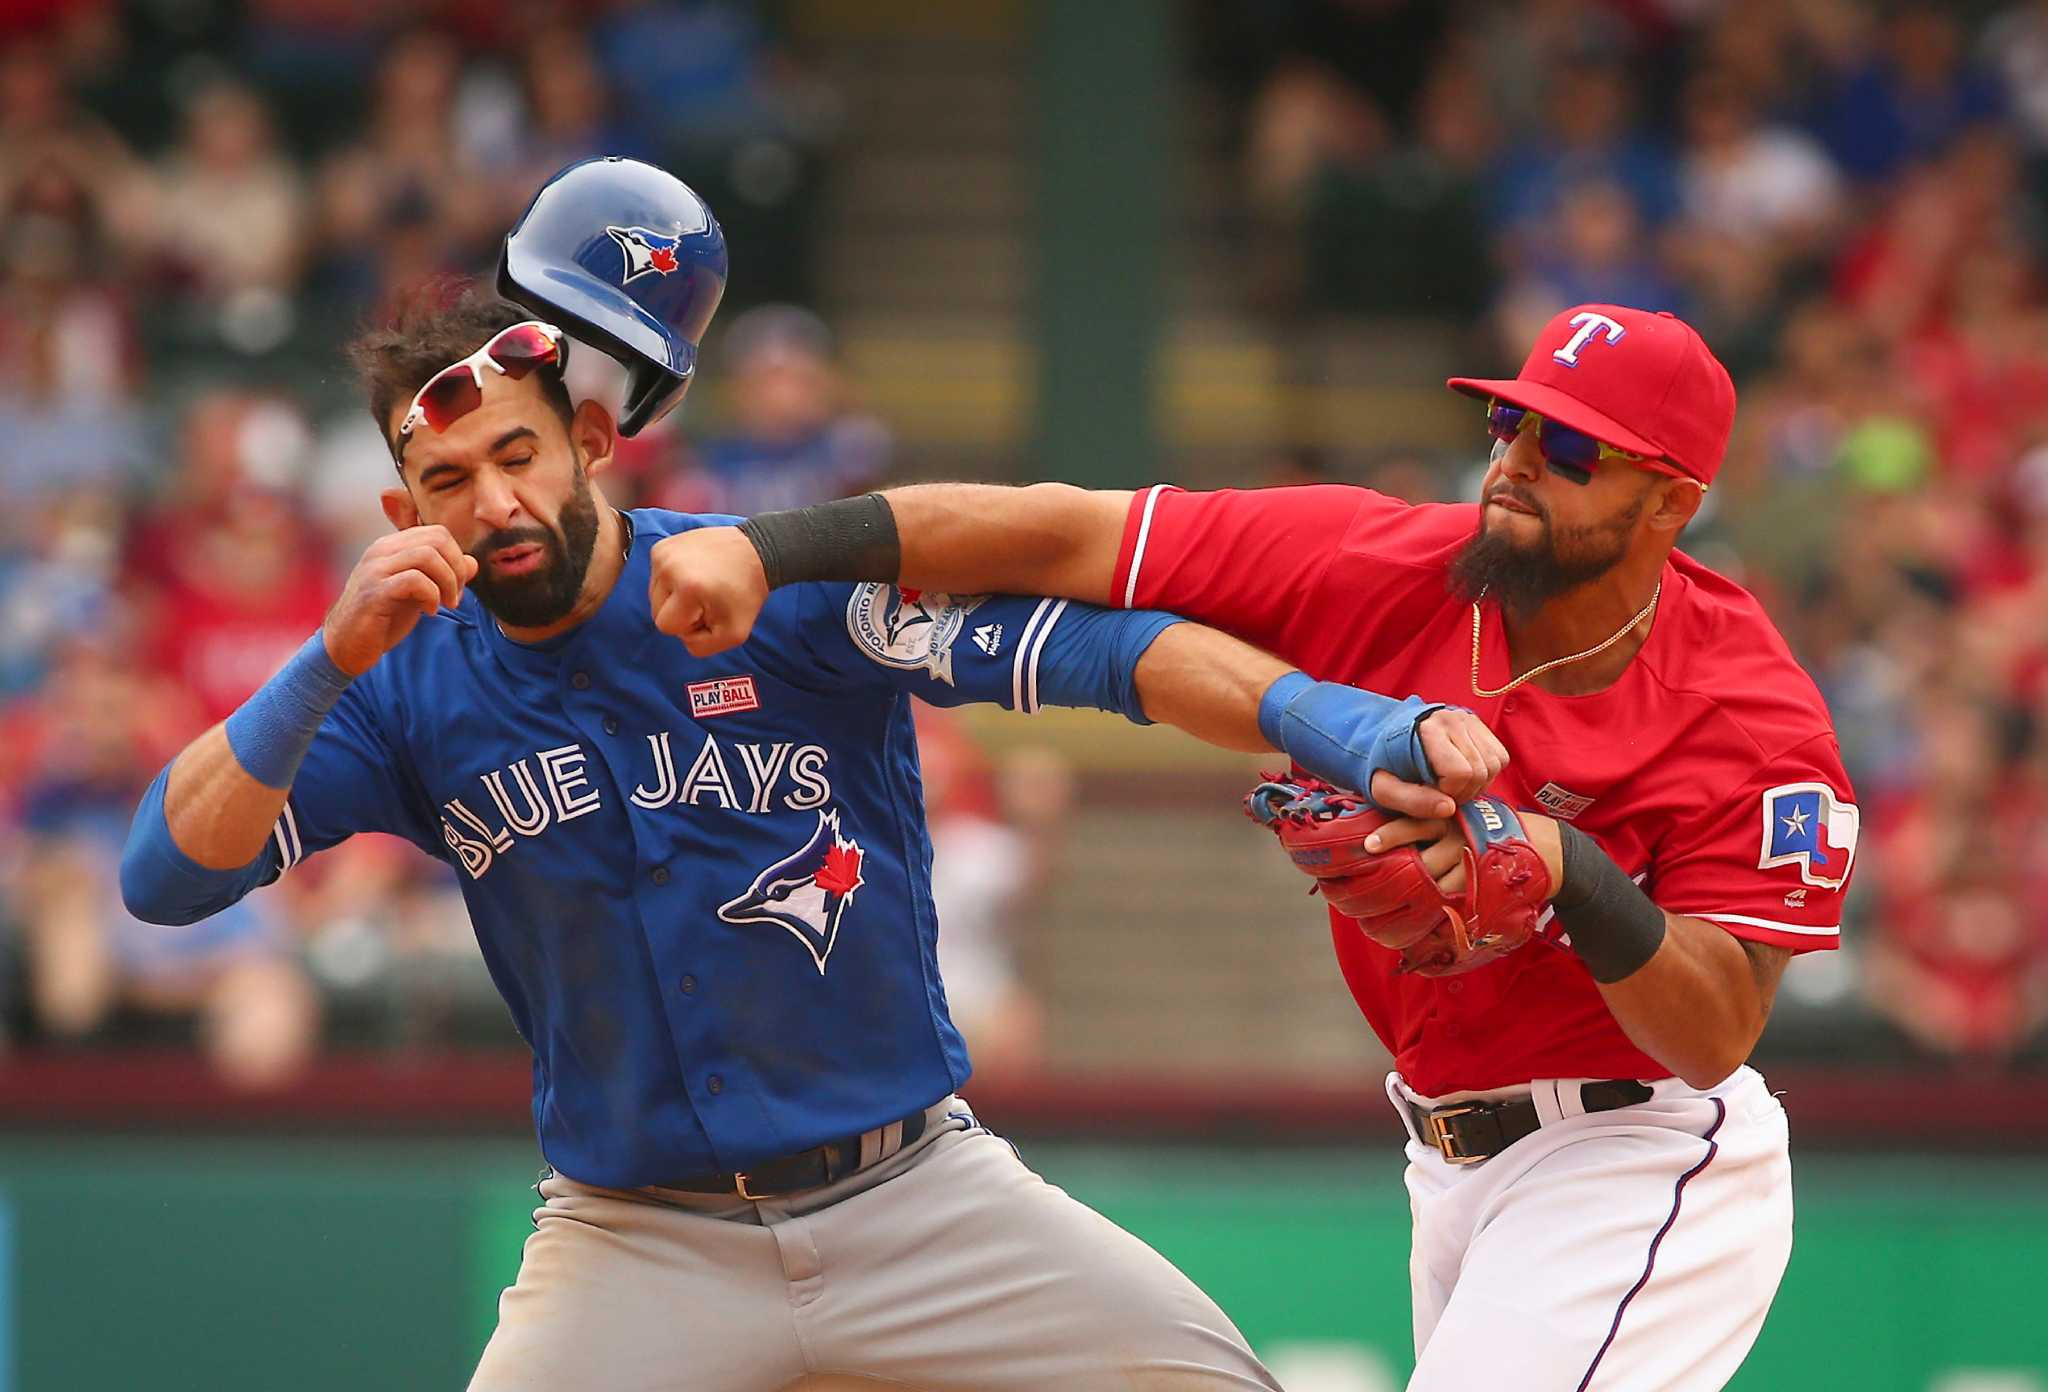 Rangers add another chapter to ugliest brawls in sports history - Houston Chronicle